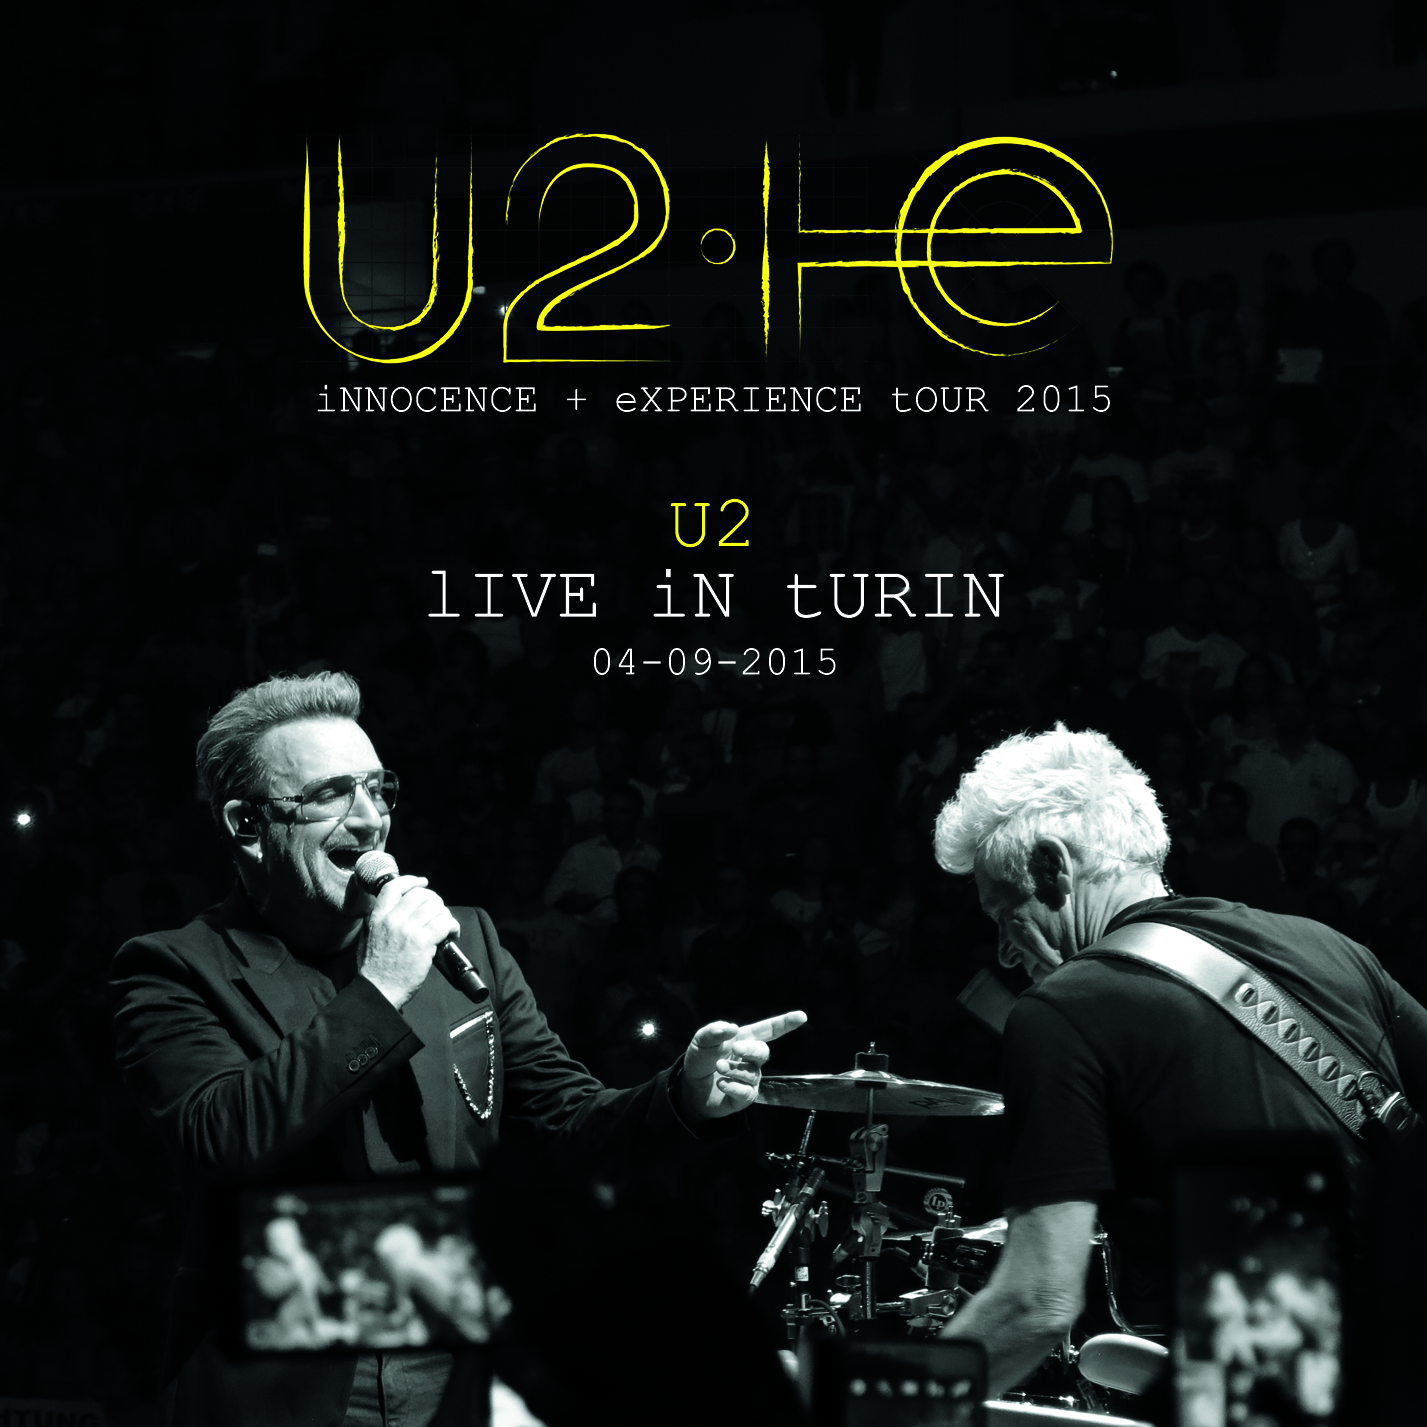 U2 announce UK tour dates for 2015 | Gigwise